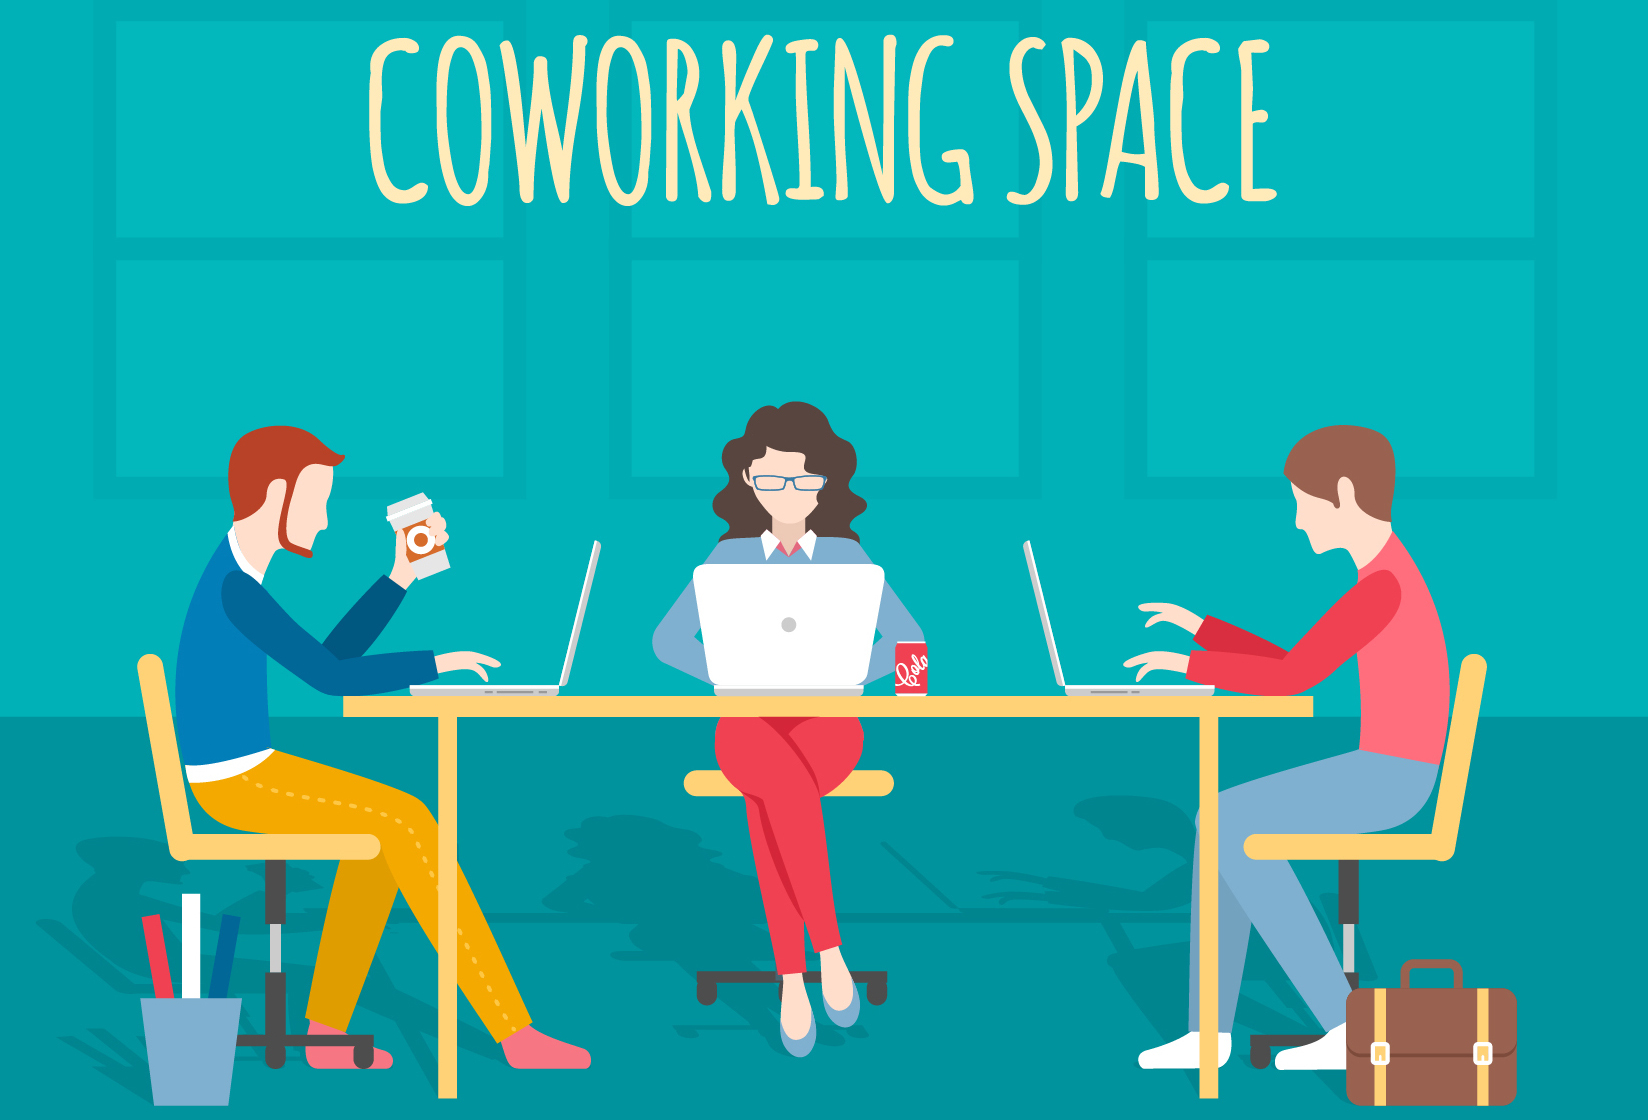 Image Source: http://www.freepik.com/free-vector/coworking-space-illustration_824182.htm